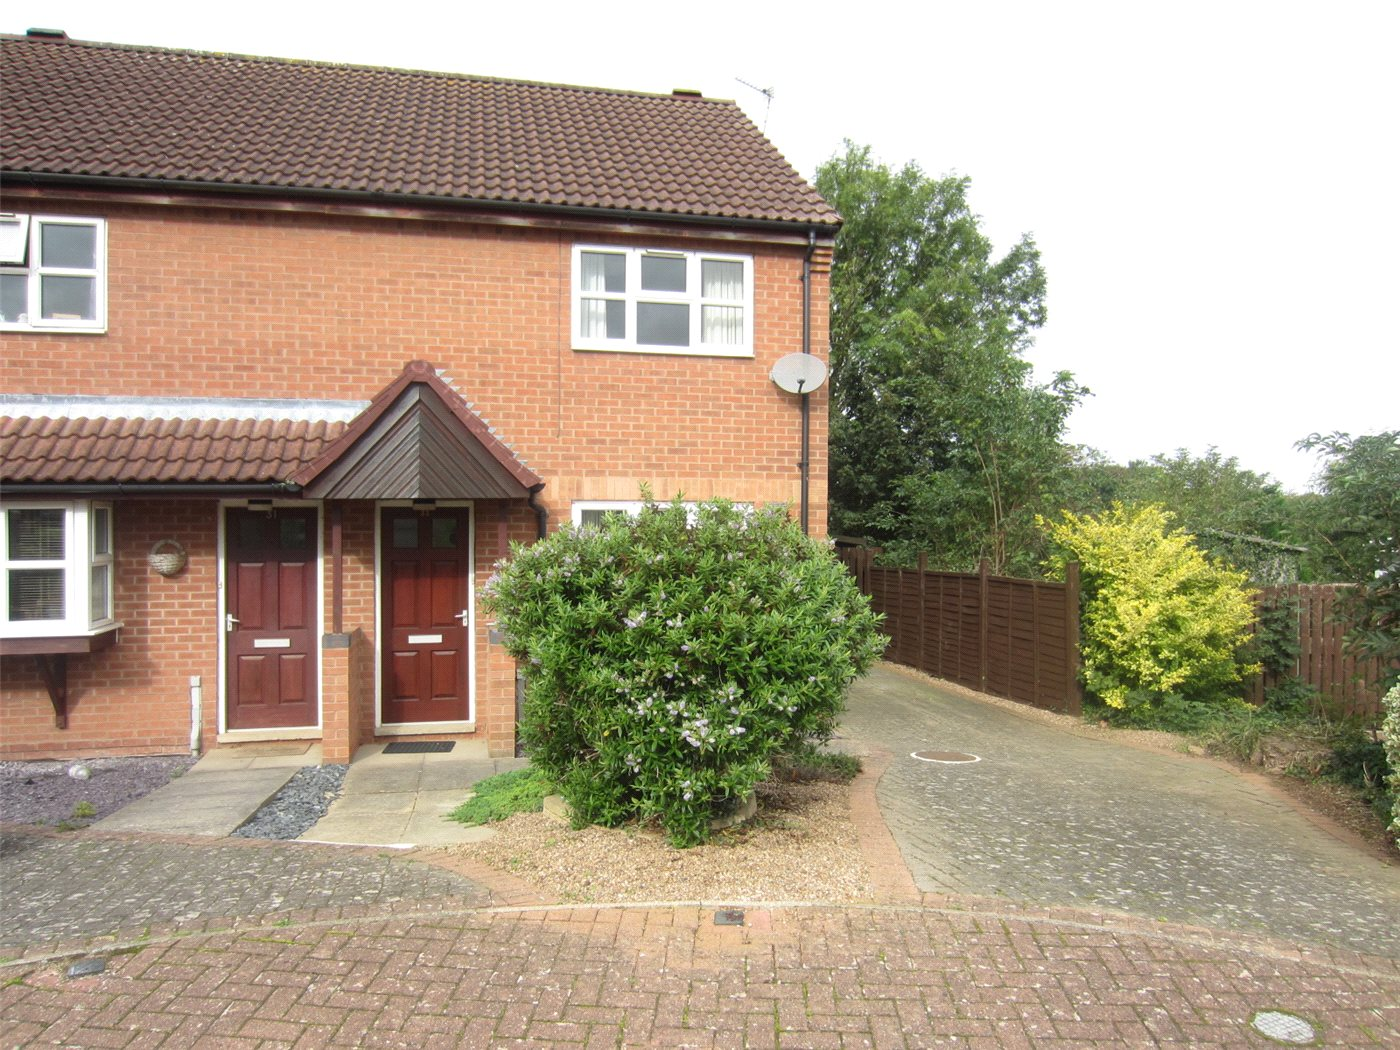 2 Bedrooms Semi Detached House for sale in Holden Way, Great Gonerby, Grantham, NG31